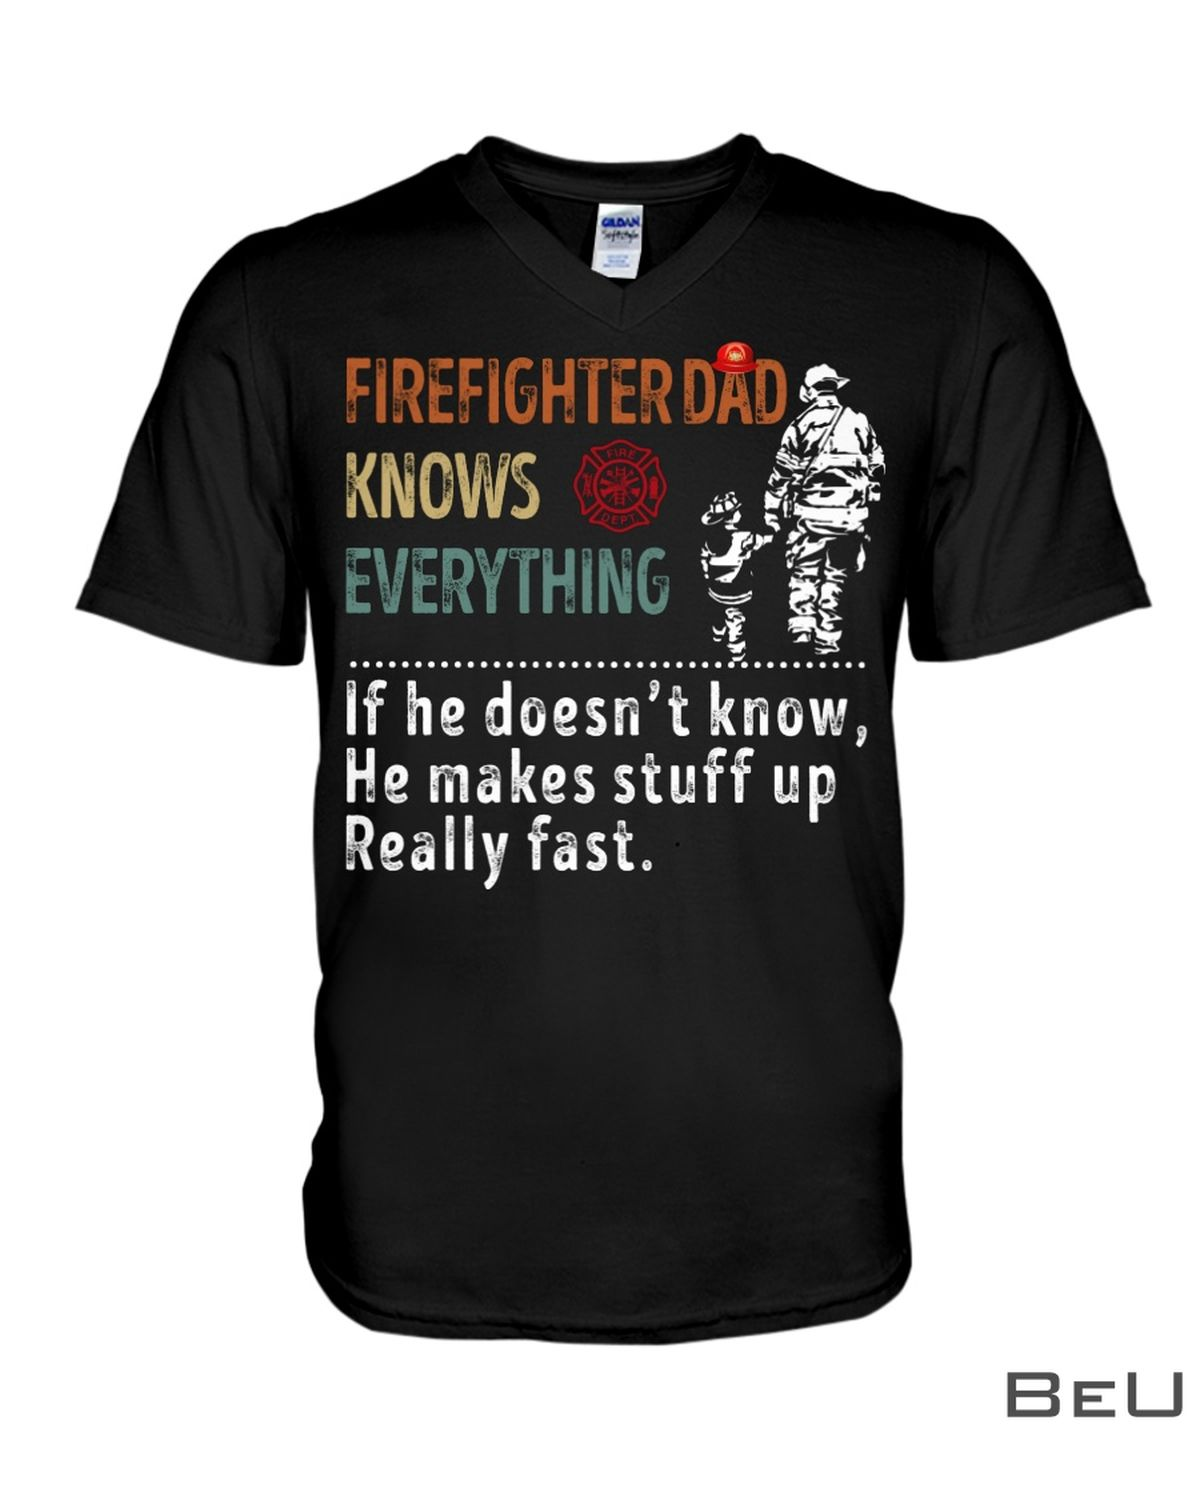 Firefighter Dad Knows Everything If He Doesn't Know He Makes Stuff Up Really Fast Shirtx